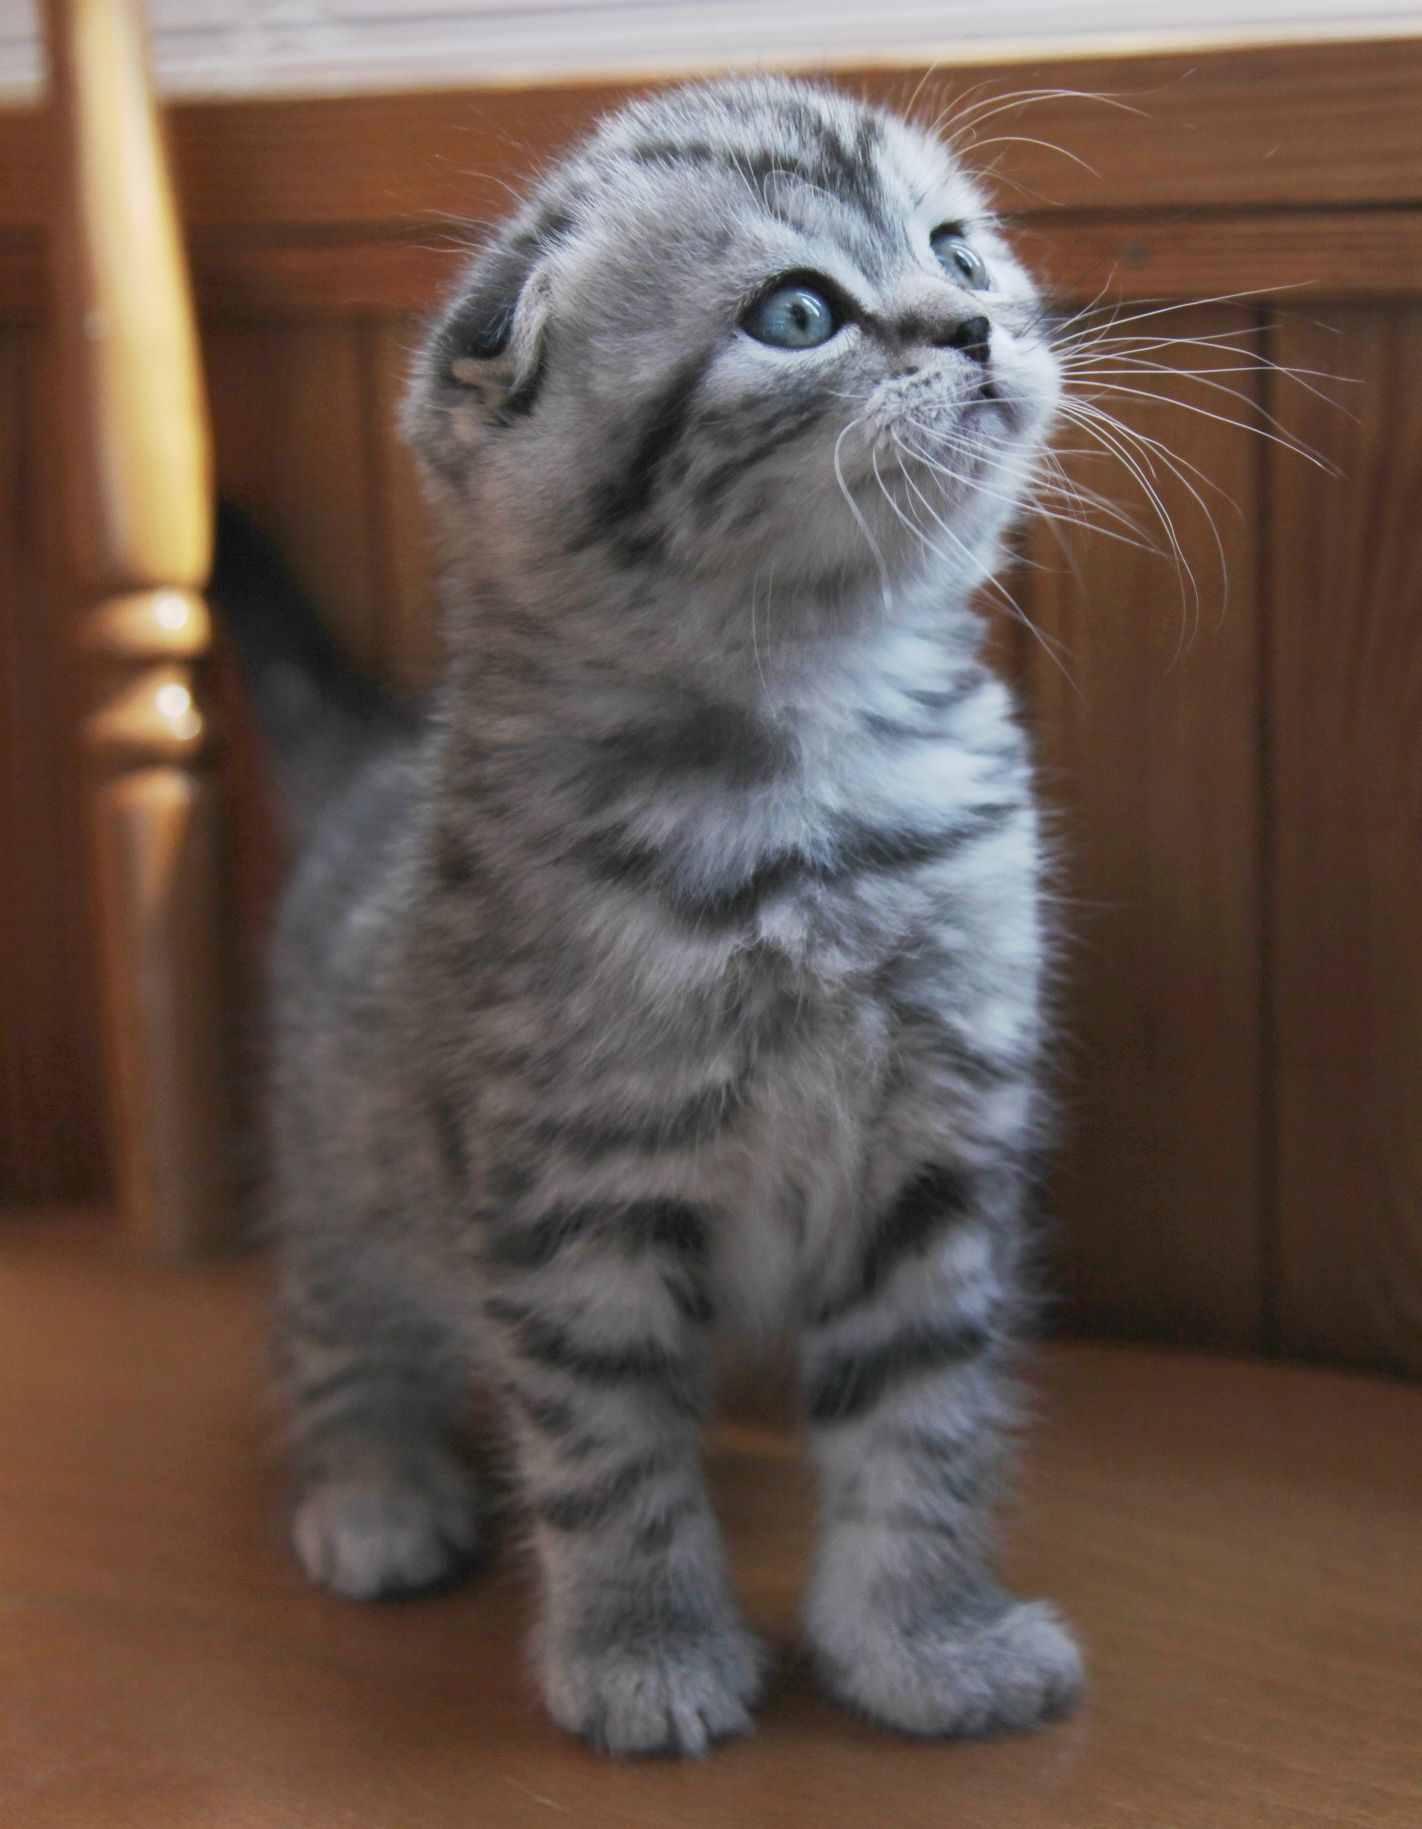 All That You Need To Know About Cats Want To Know More Click On The Image Catstips Scottish Fold Kittens Cat Scottish Fold Kittens Cutest